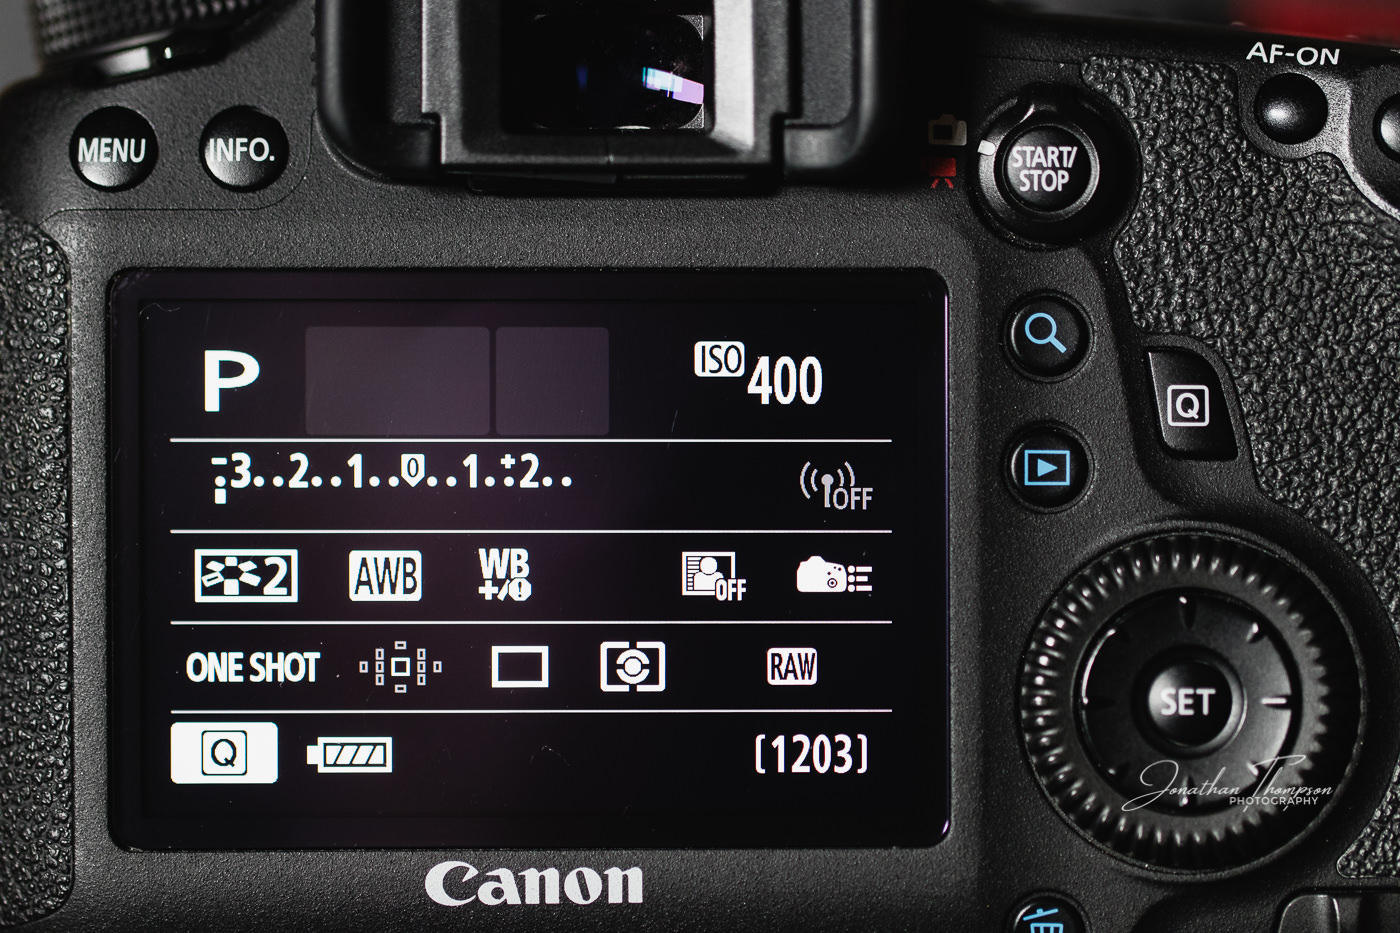 Canon DSLR rear screen displaying Program camera mode